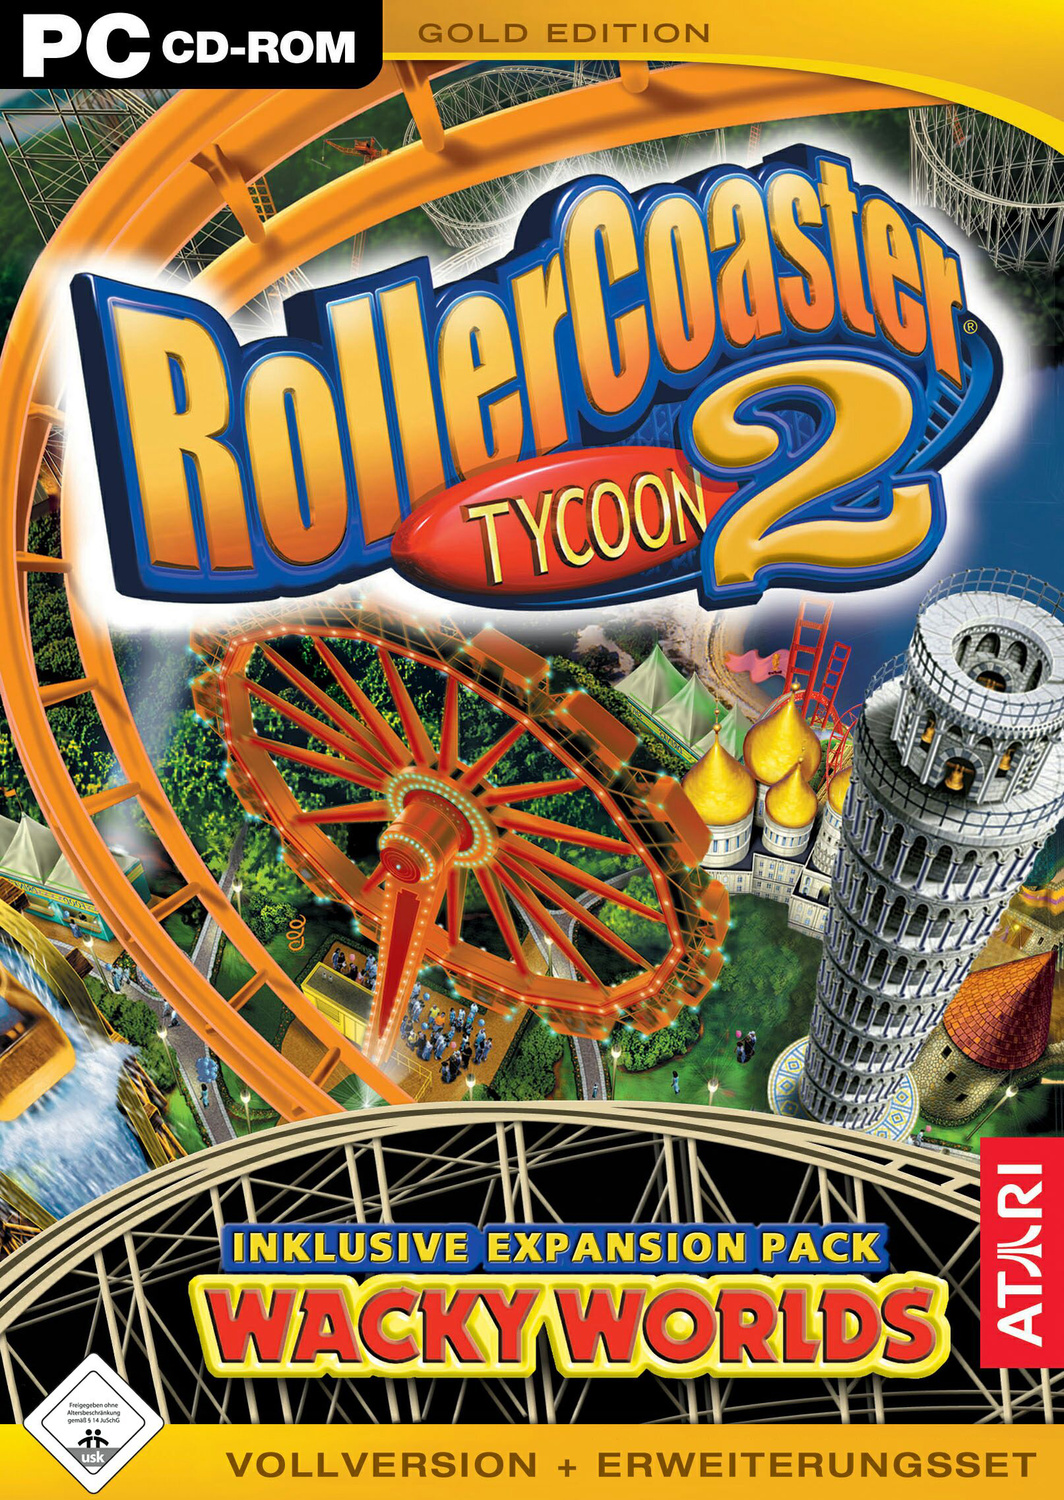 Roller Coaster Tycoon 2 [Gold Edition]